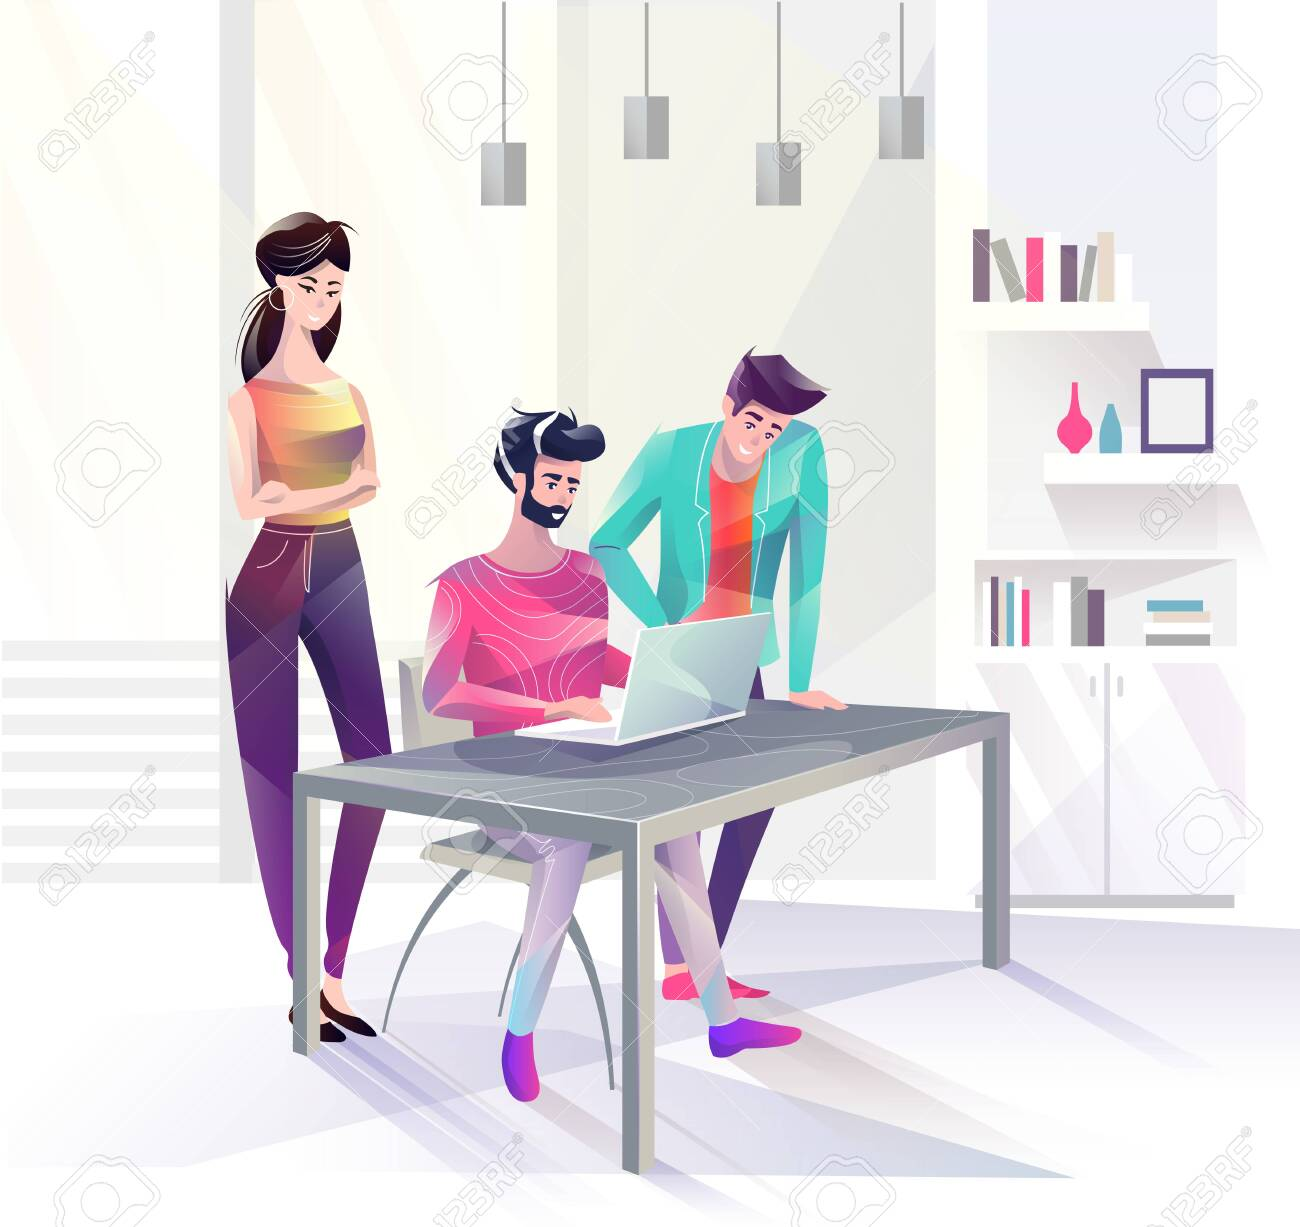 Concept in flat style with office workers. Man and woman are looking at laptop. Businessman. Creative atmosphere. Vector illustration. - 136053076